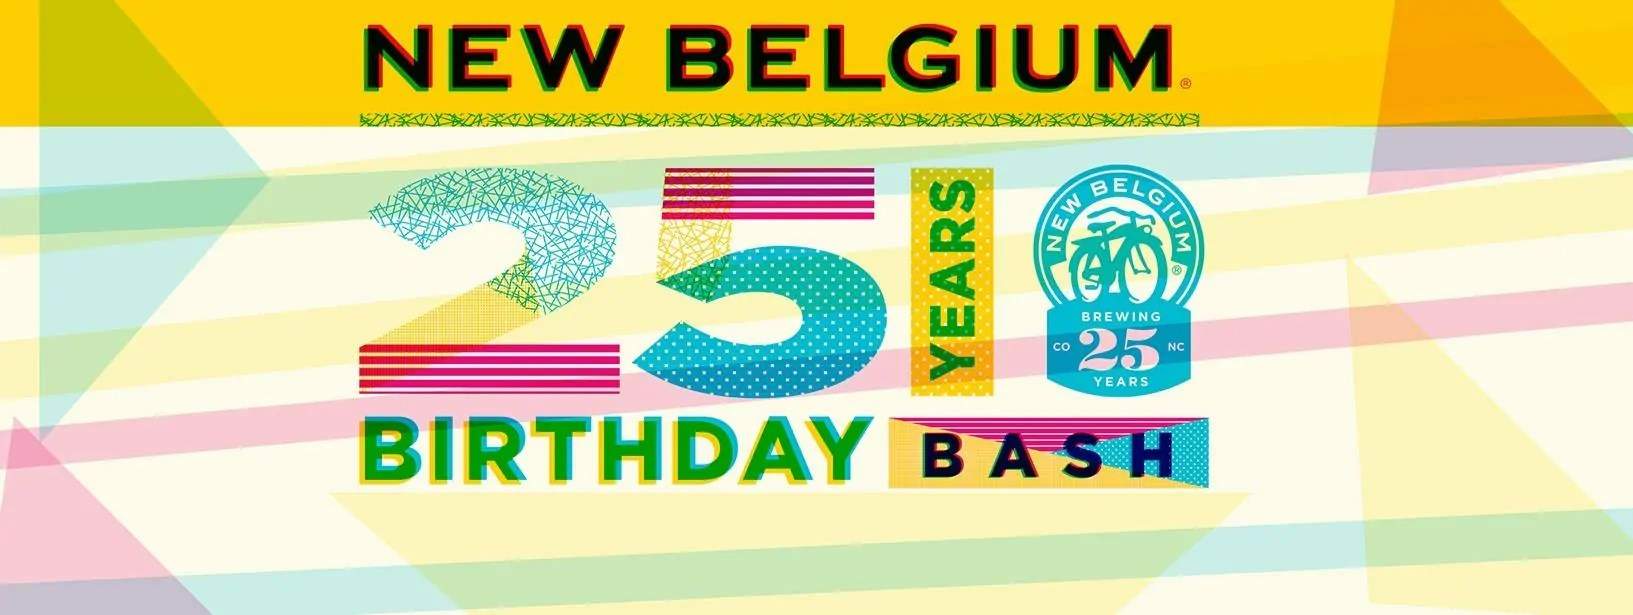 New Belgium Brewing 25 Year Birthday Bash | July 2016 Events | BottleMakesThree.com